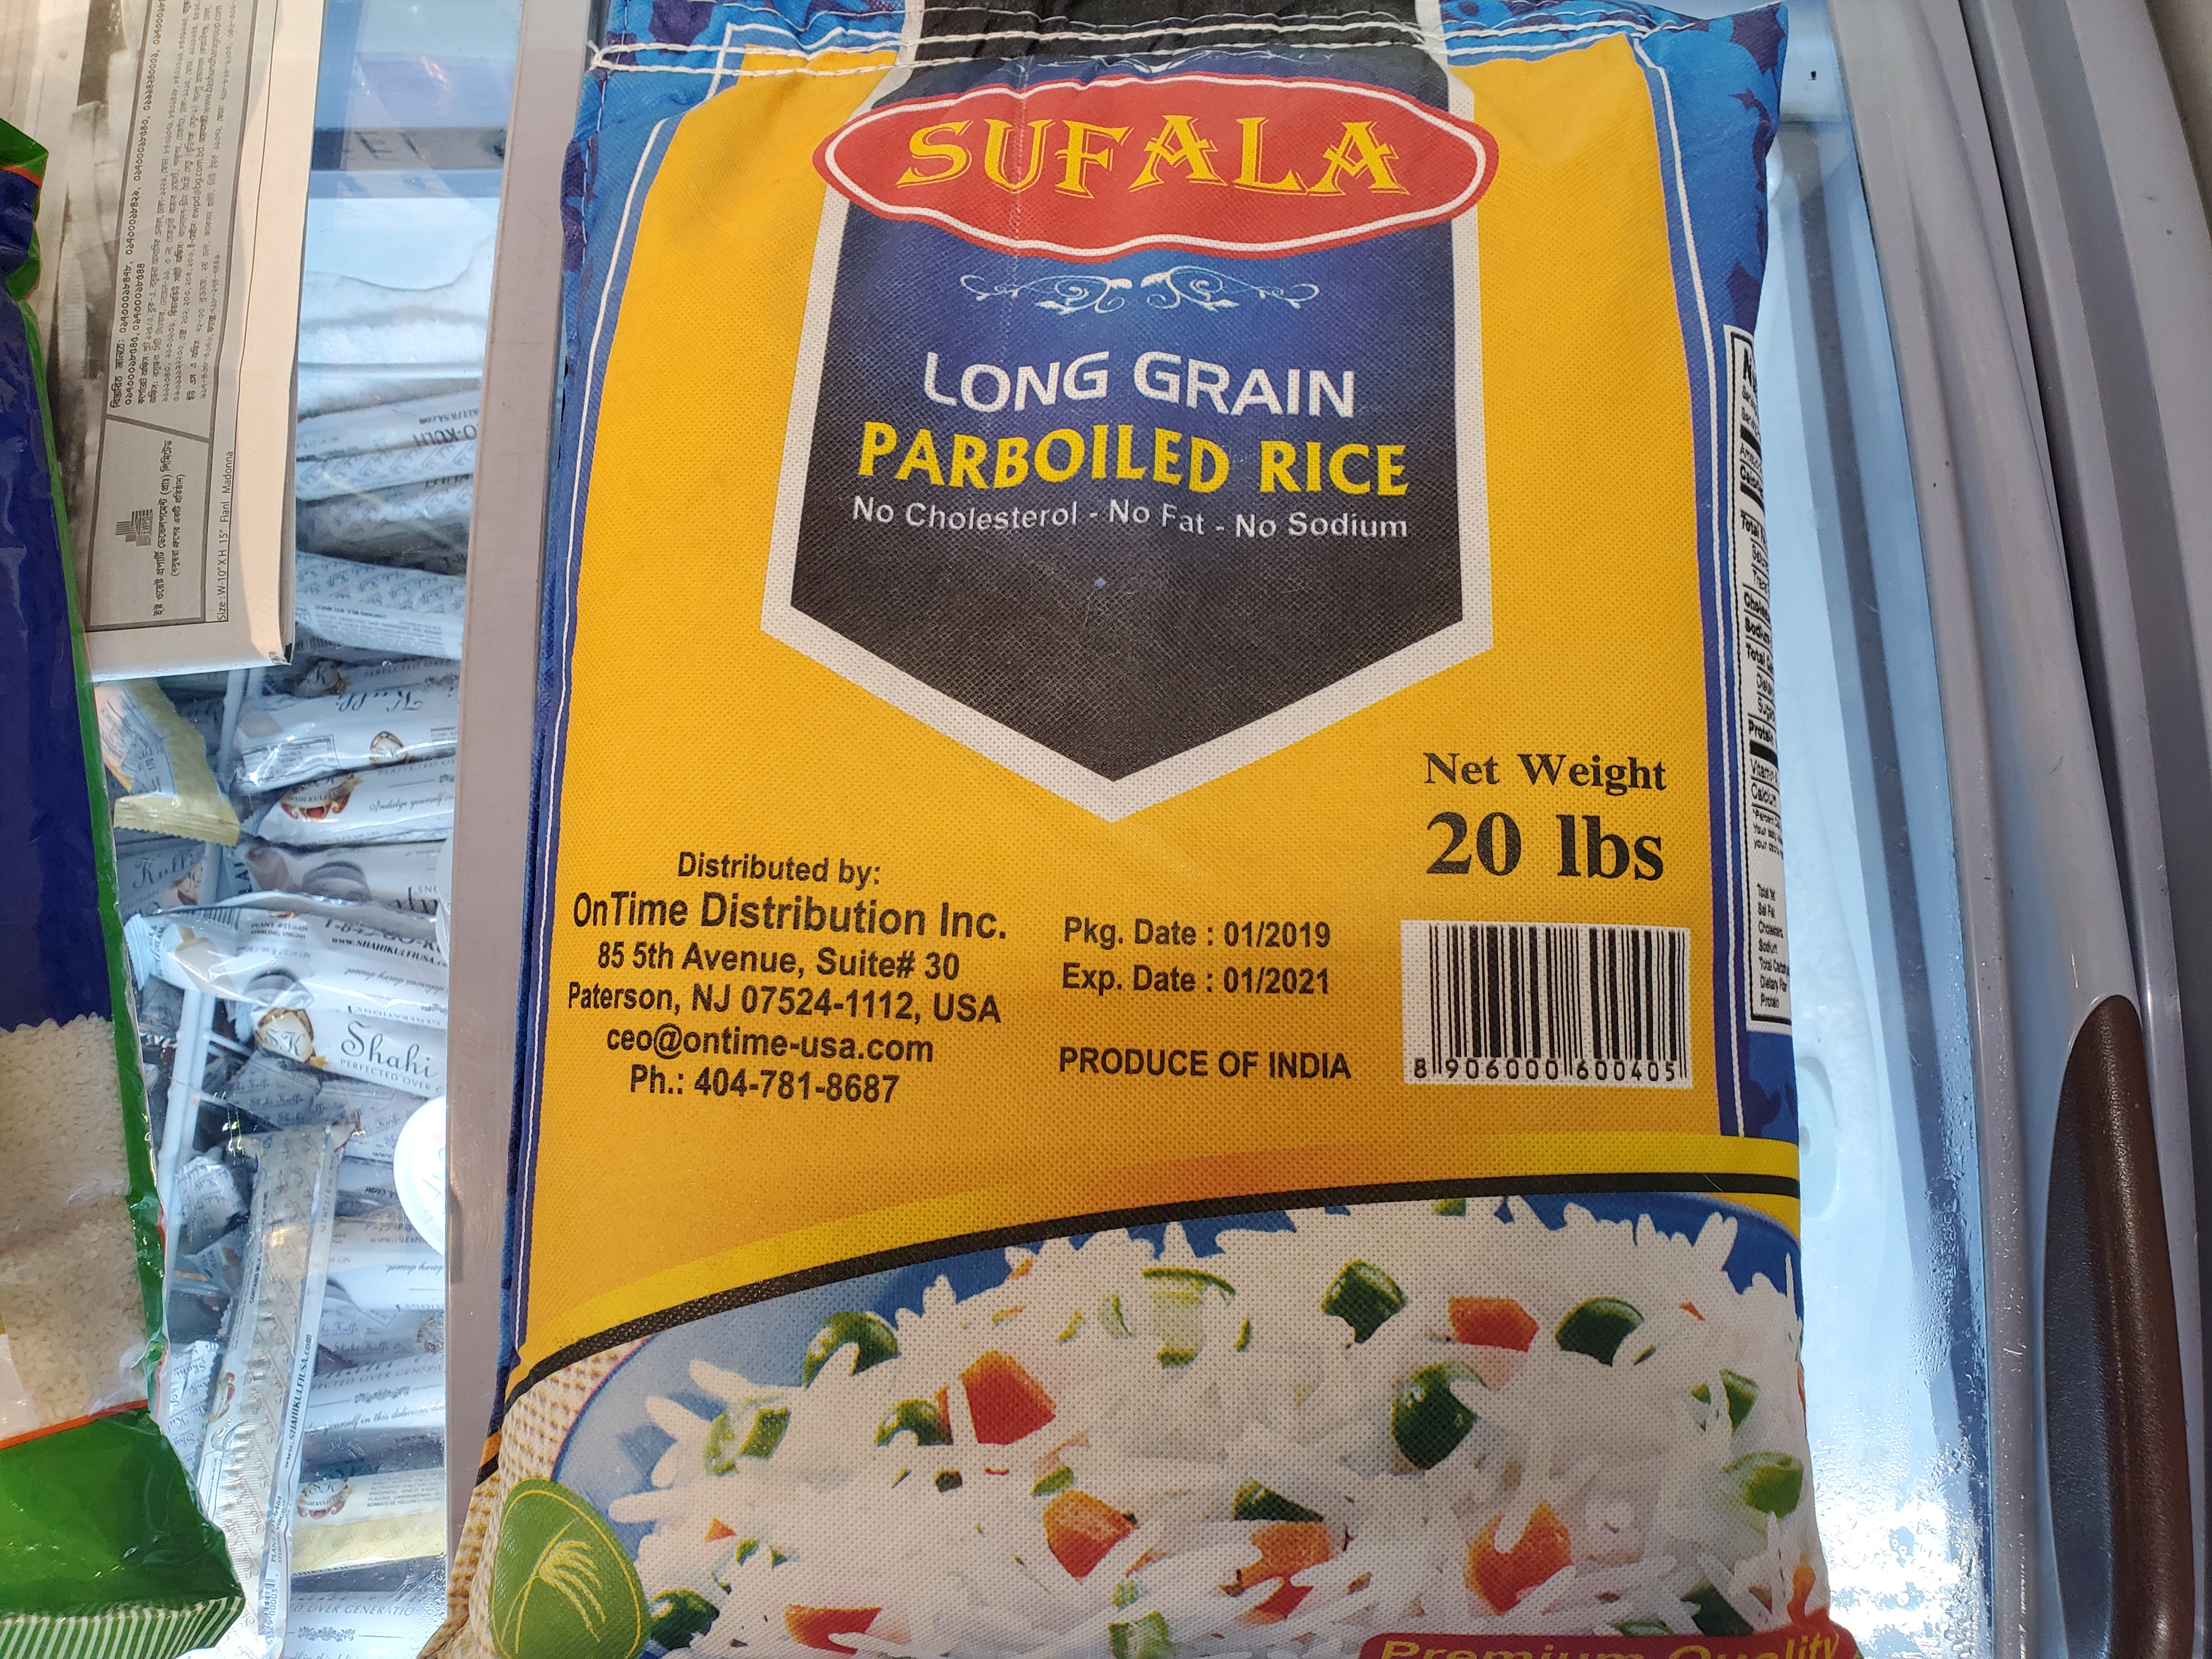 SUFALA LONG GRAIN PARBOILED RICE 20lb